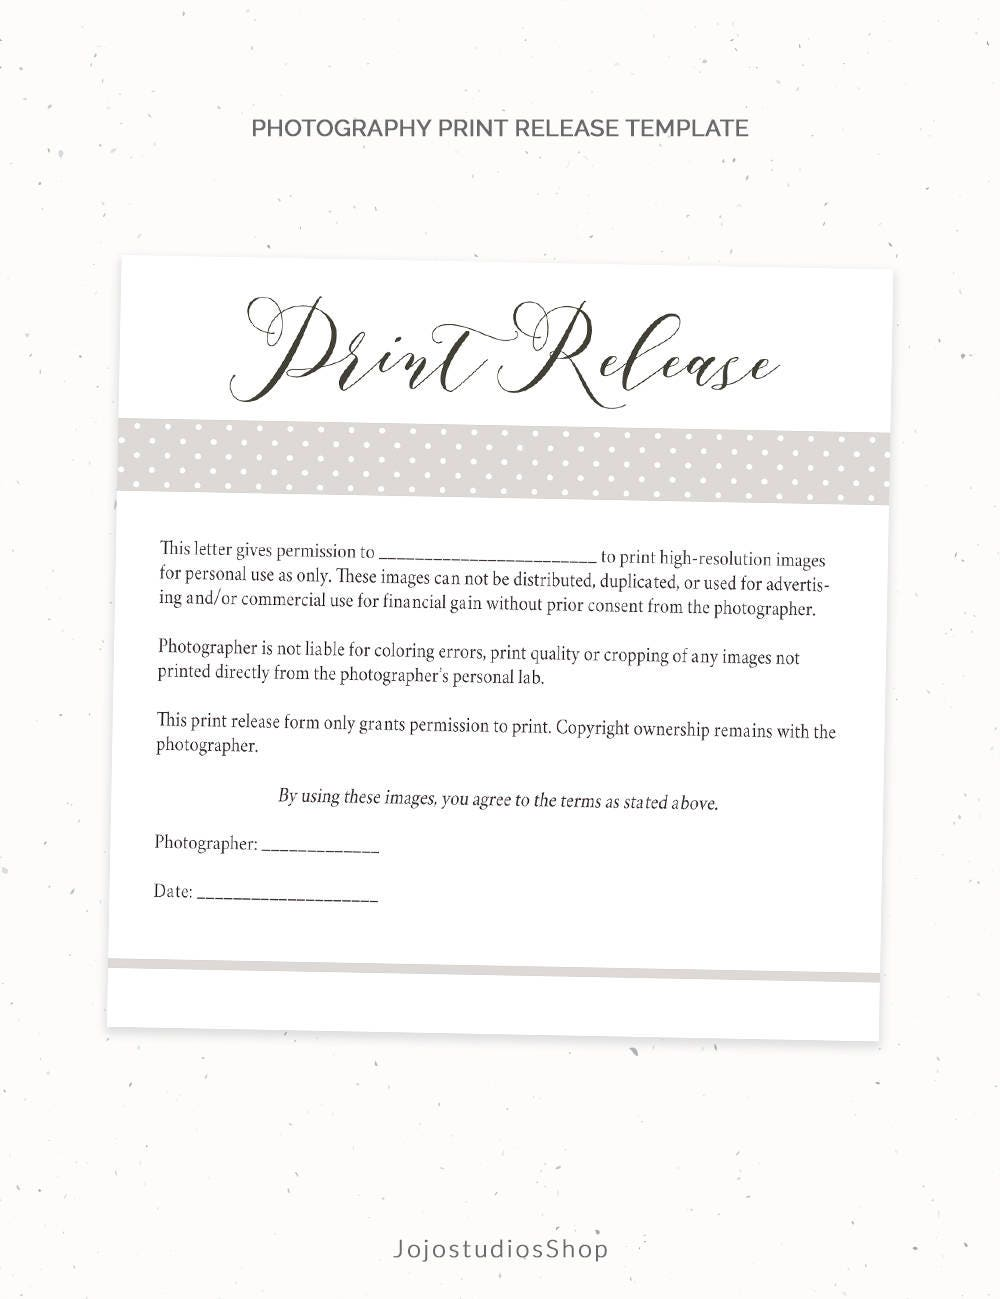 Photography print release form template photography template for Photographer copyright release form template